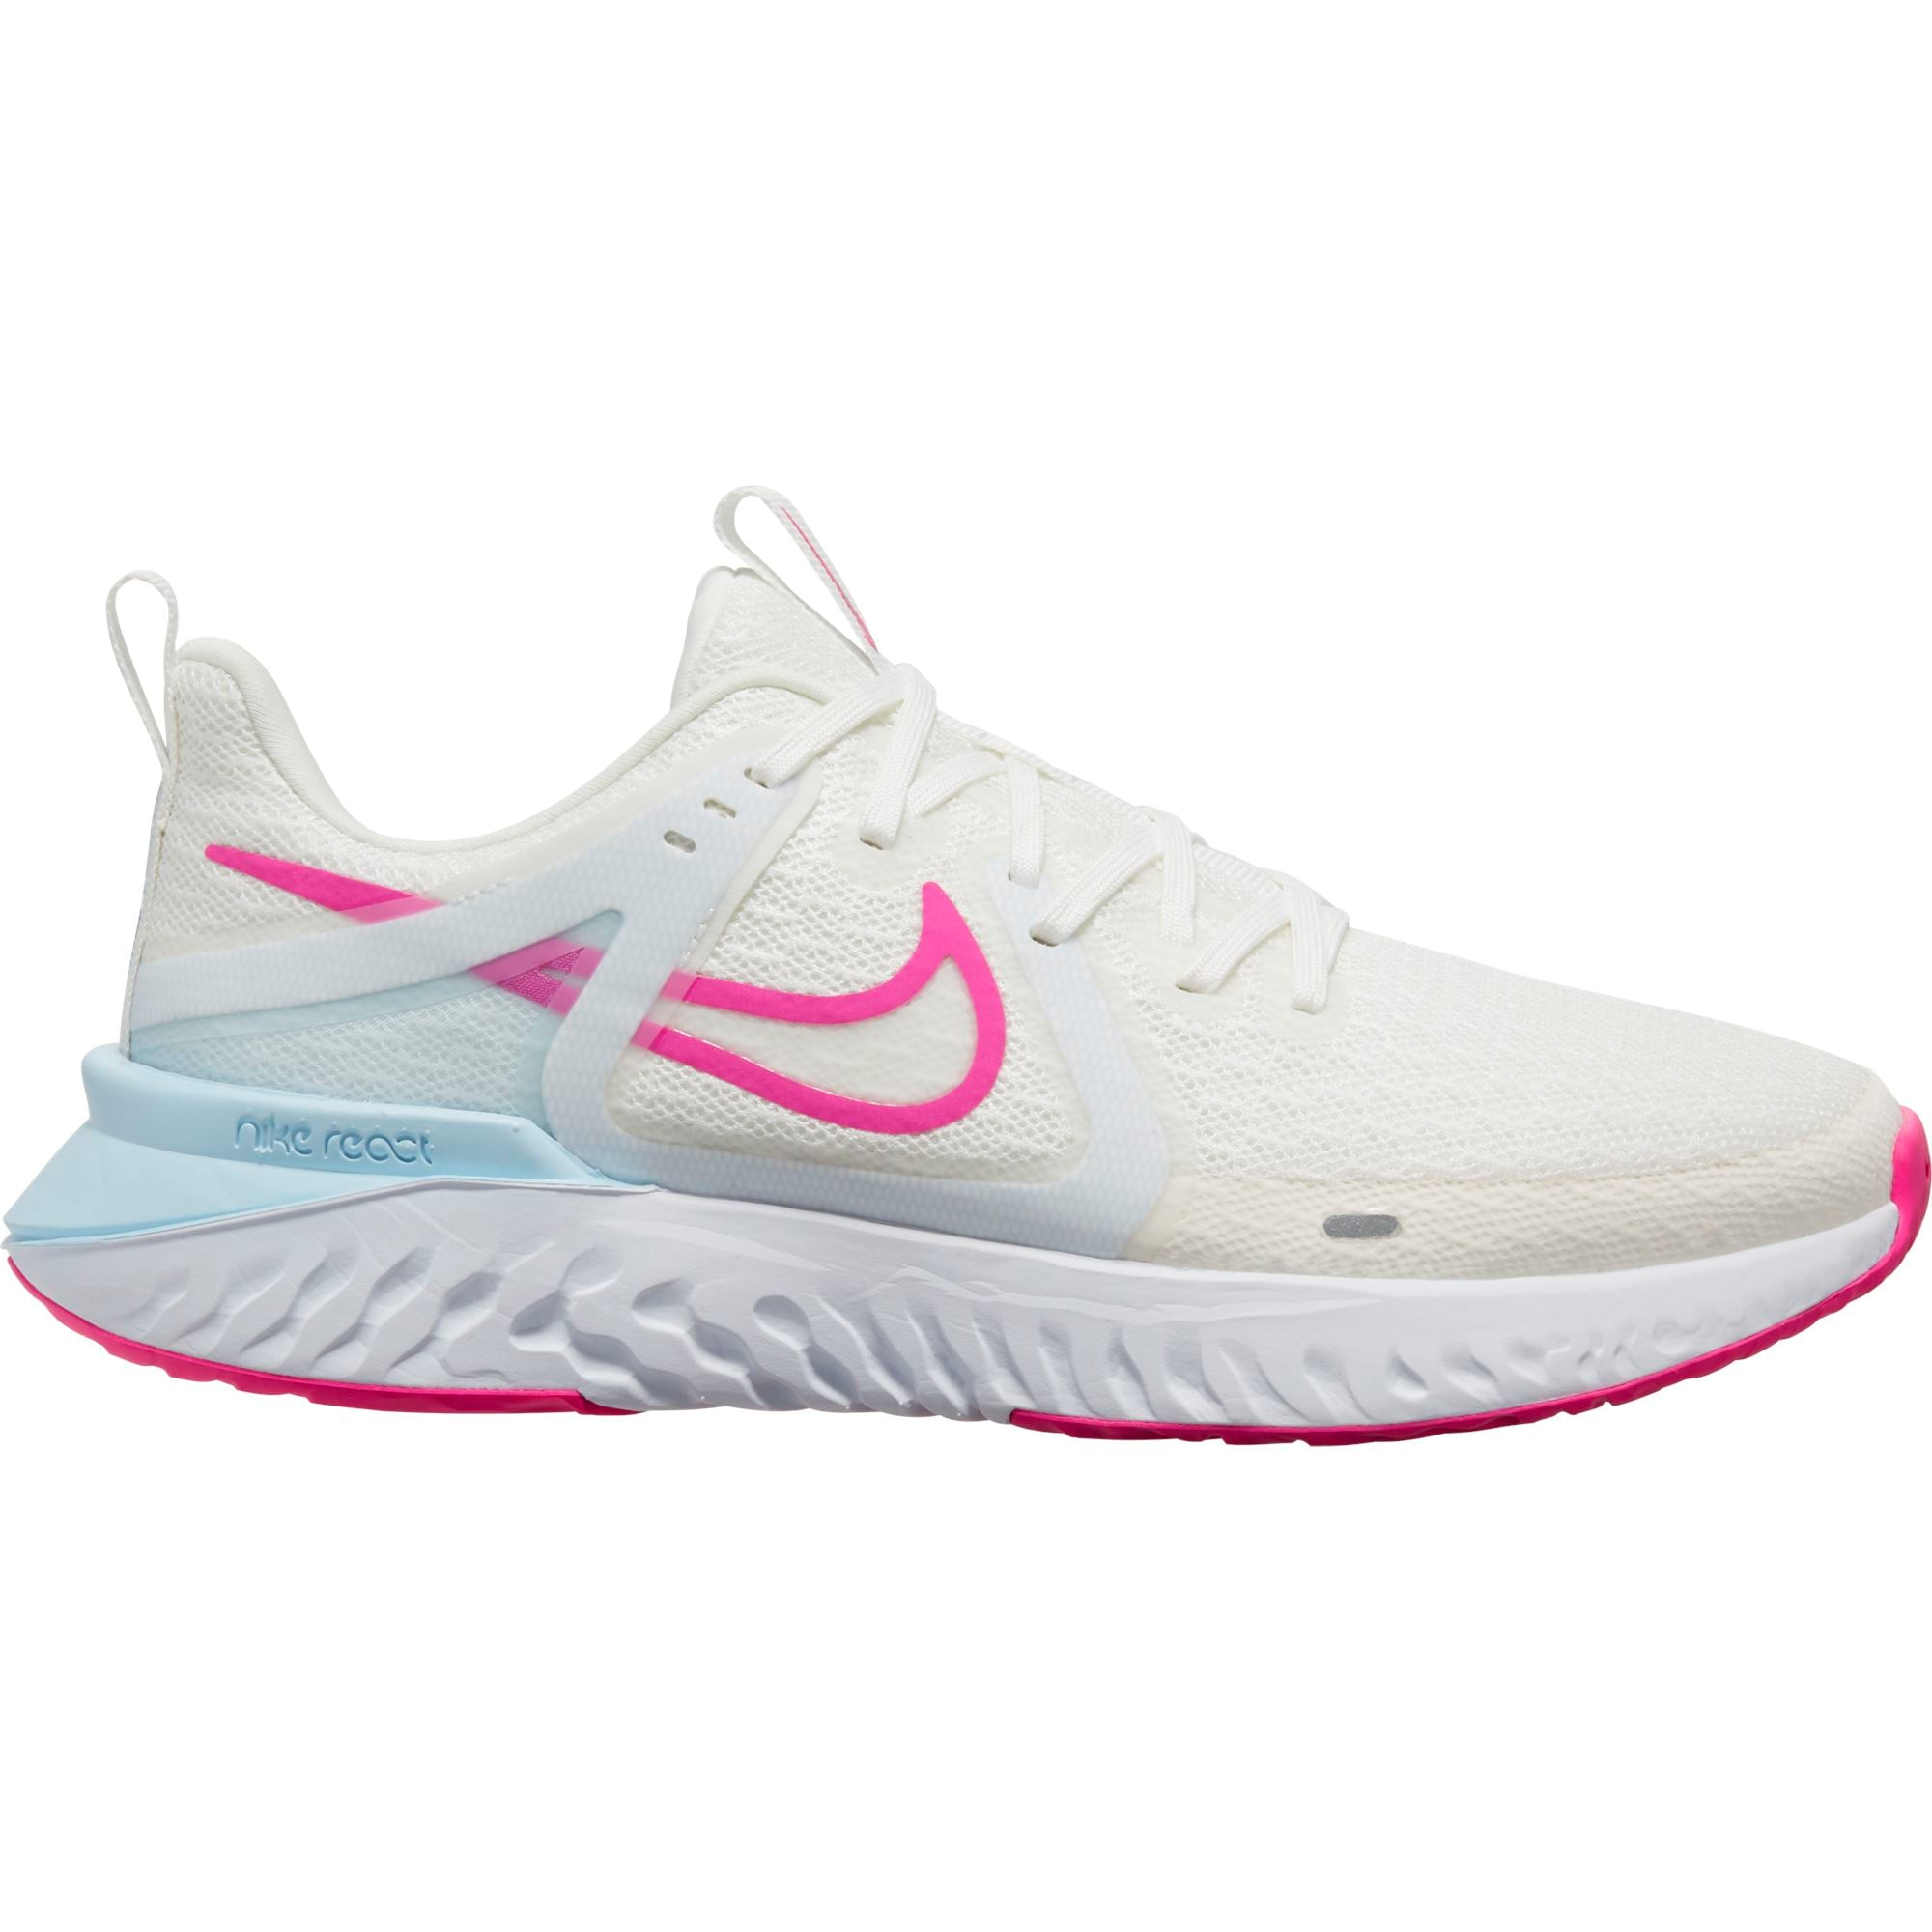 Nike Womens Legend React 2 - Summit White/Fire Pink-Hydrogen Blue SP-Footwear-Womens Nike